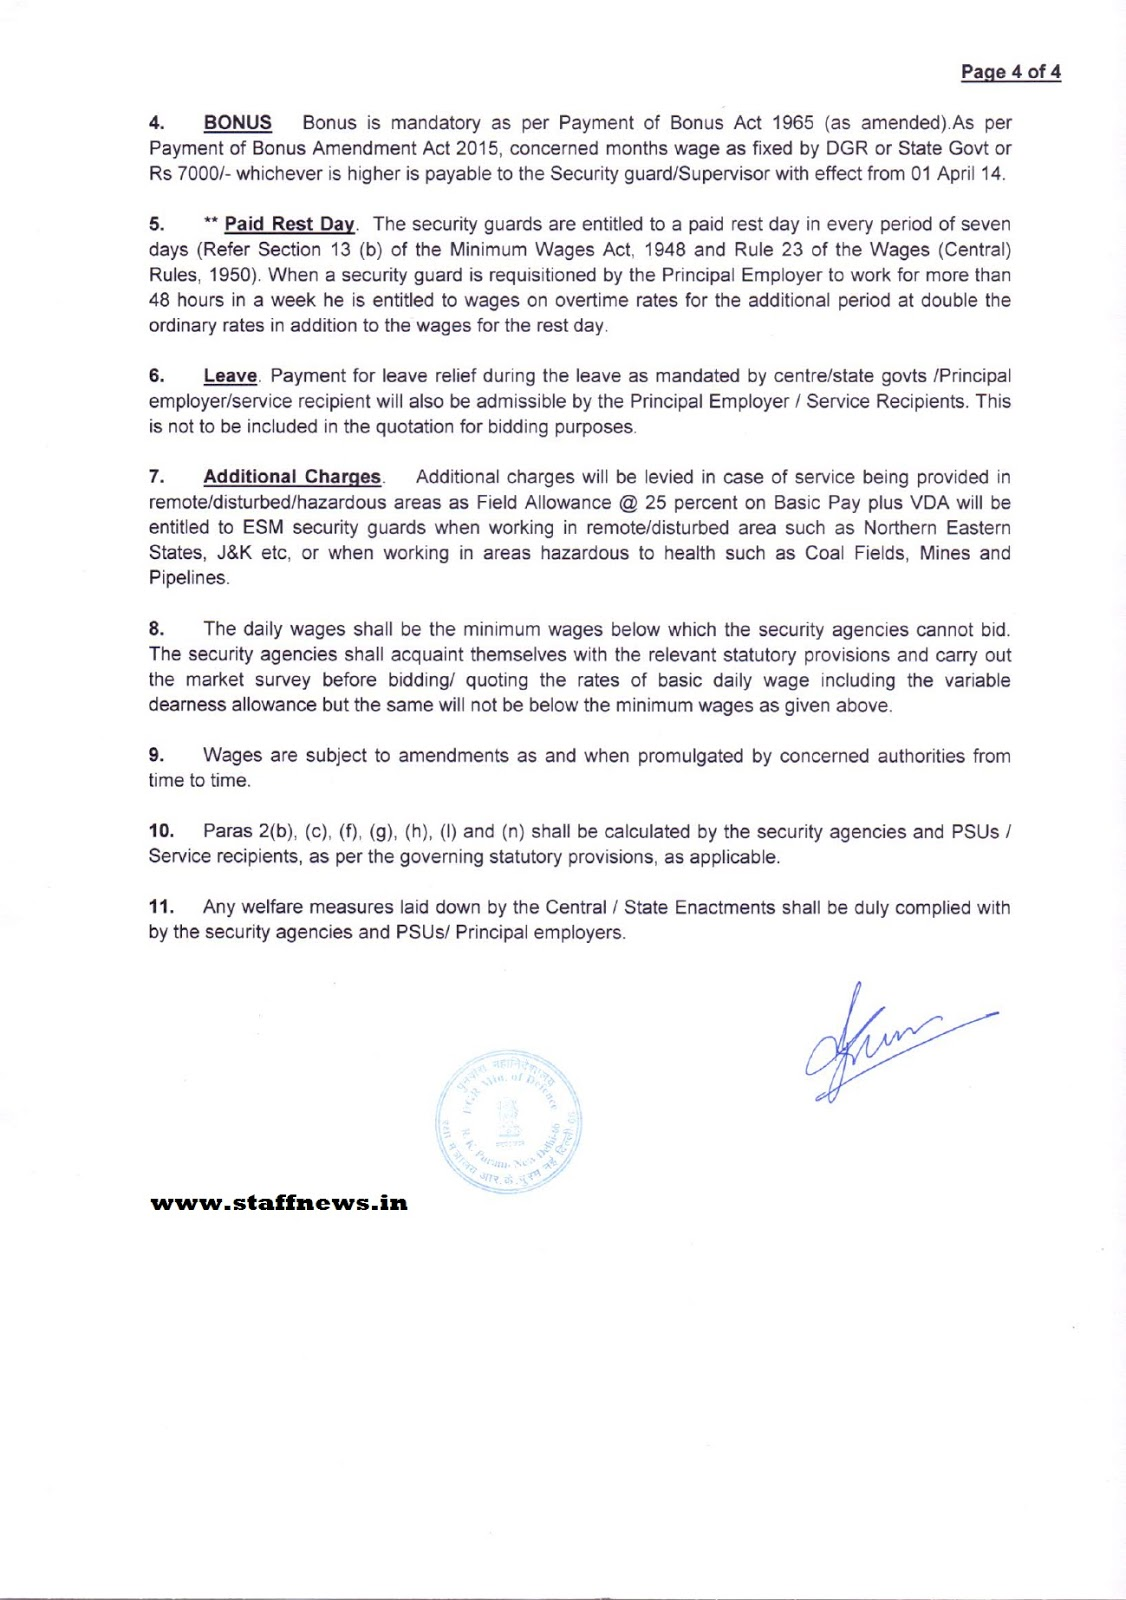 minimum wages w e f apr for one day paid to all guards dgr wages 1 apr 2016 notes